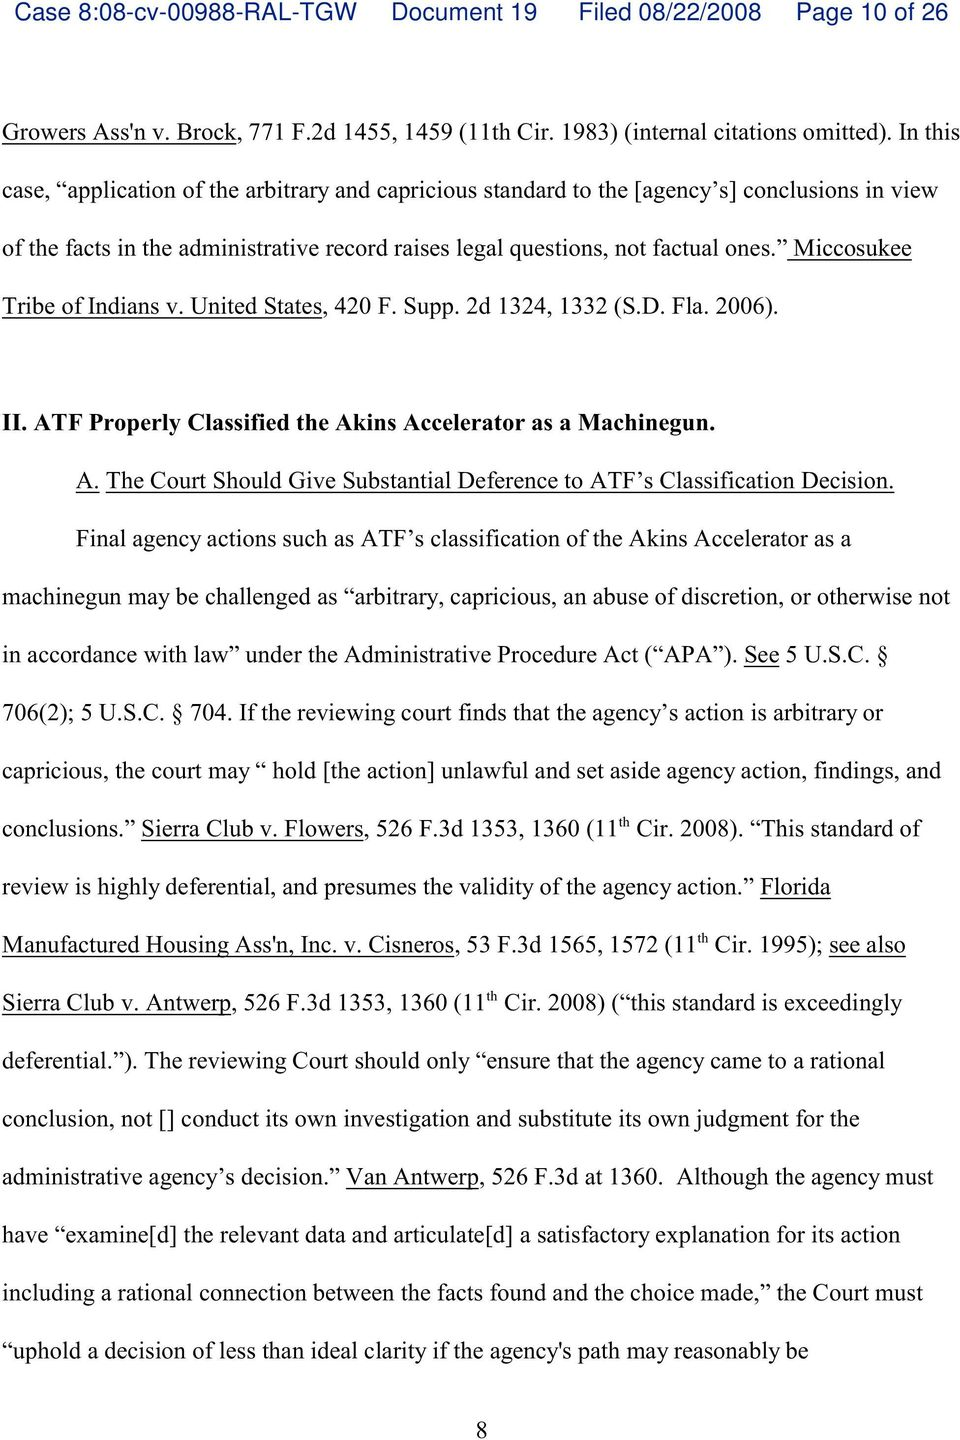 Miccosukee Tribe of Indians v. United States, 420 F. Supp. 2d 1324, 1332 (S.D. Fla. 2006. II. ATF Properly Classified e Akins Accelerator as a Machinegun. A. The Court Should Give Substantial Deference to ATF s Classification Decision.